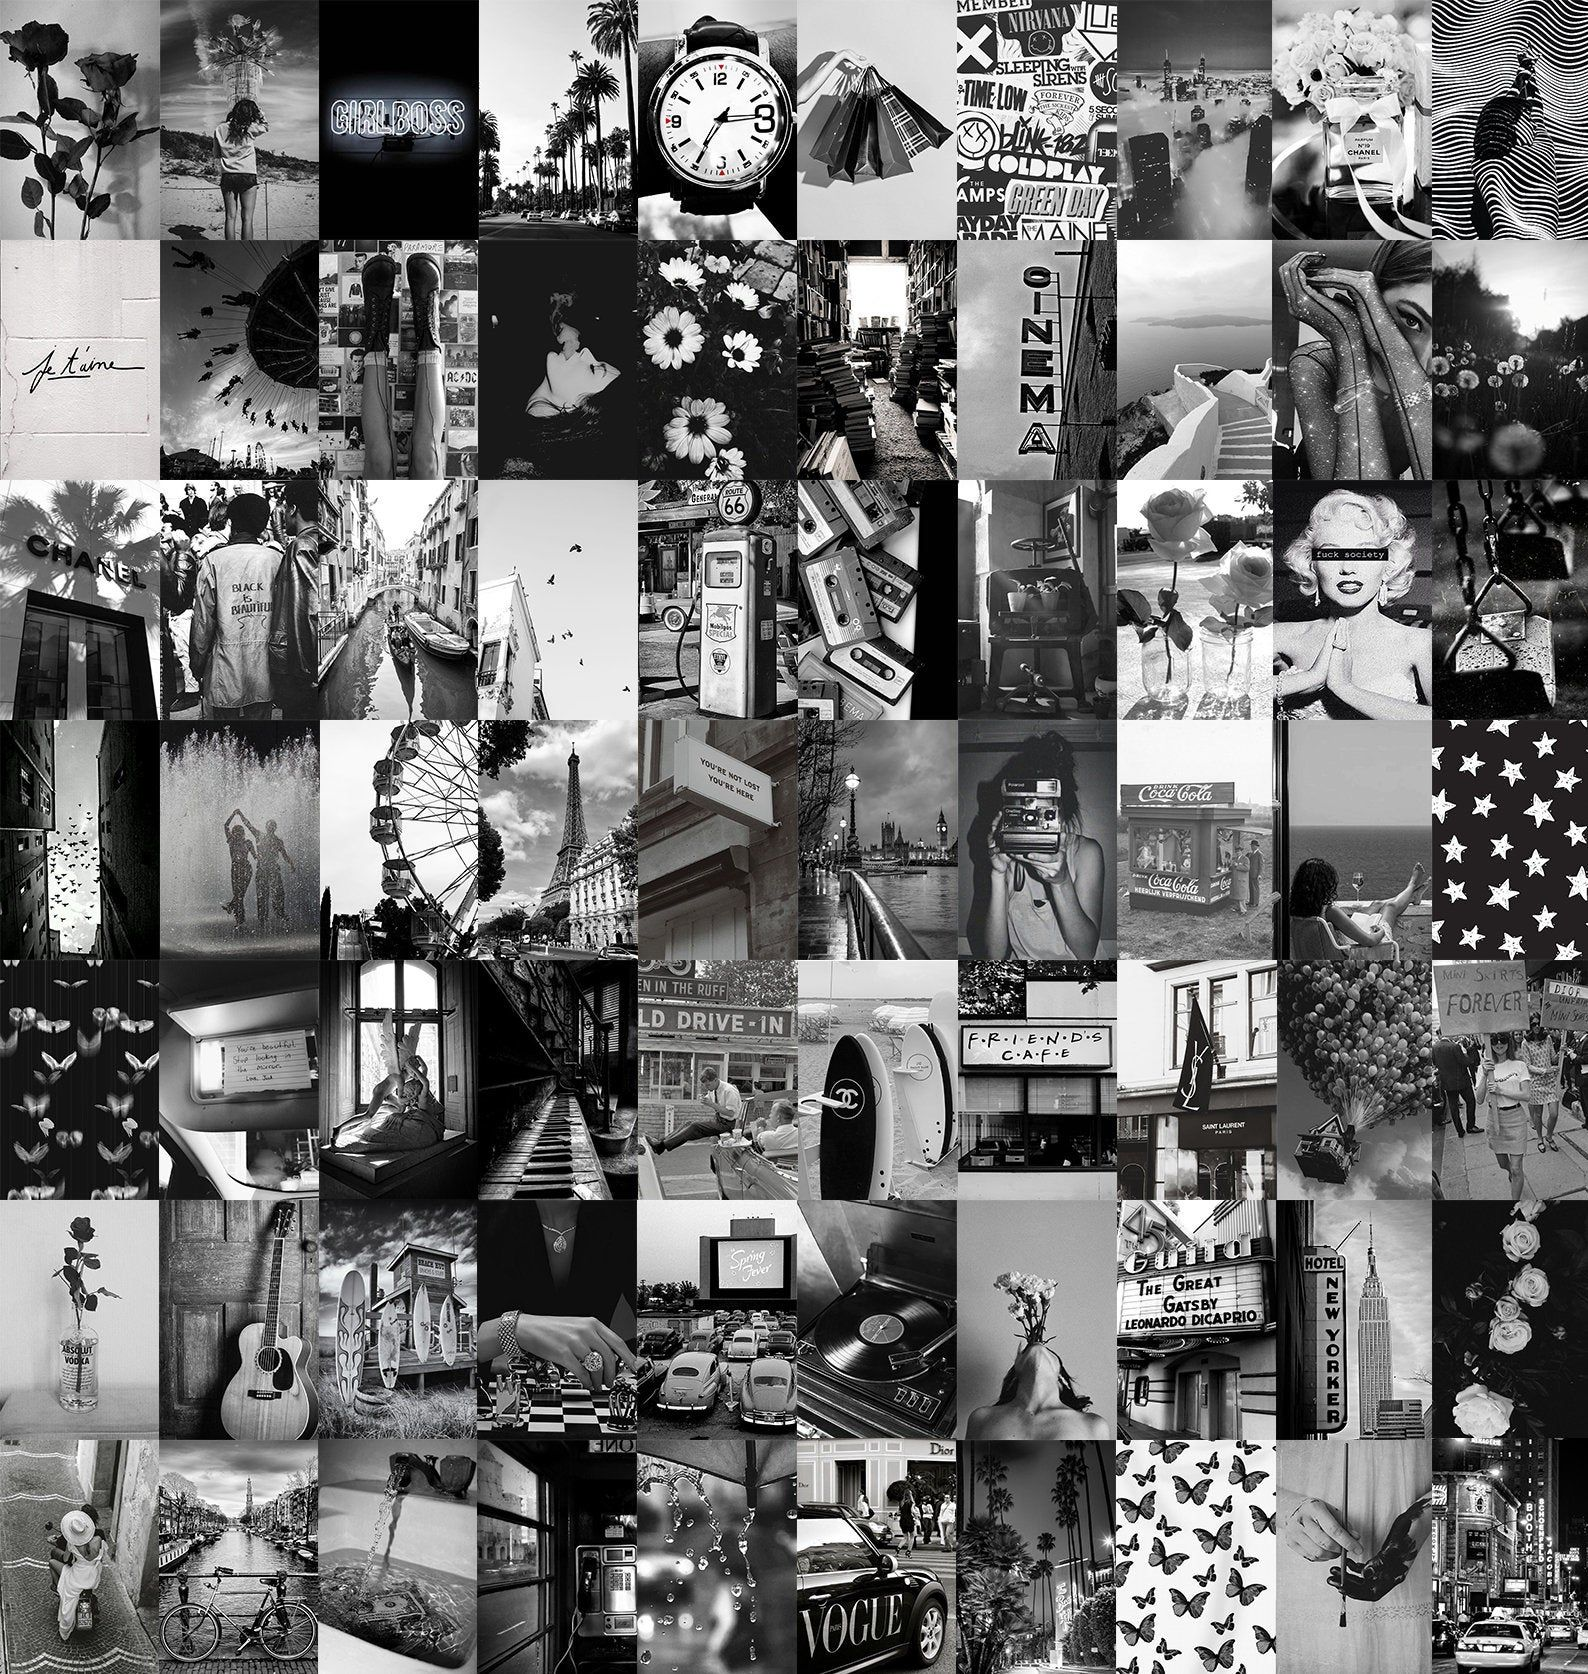 Pin By Gabriell Zeno On Weedale In 2021 Photo Wall Collage Black And White Photo Wall Black And White Picture Wall